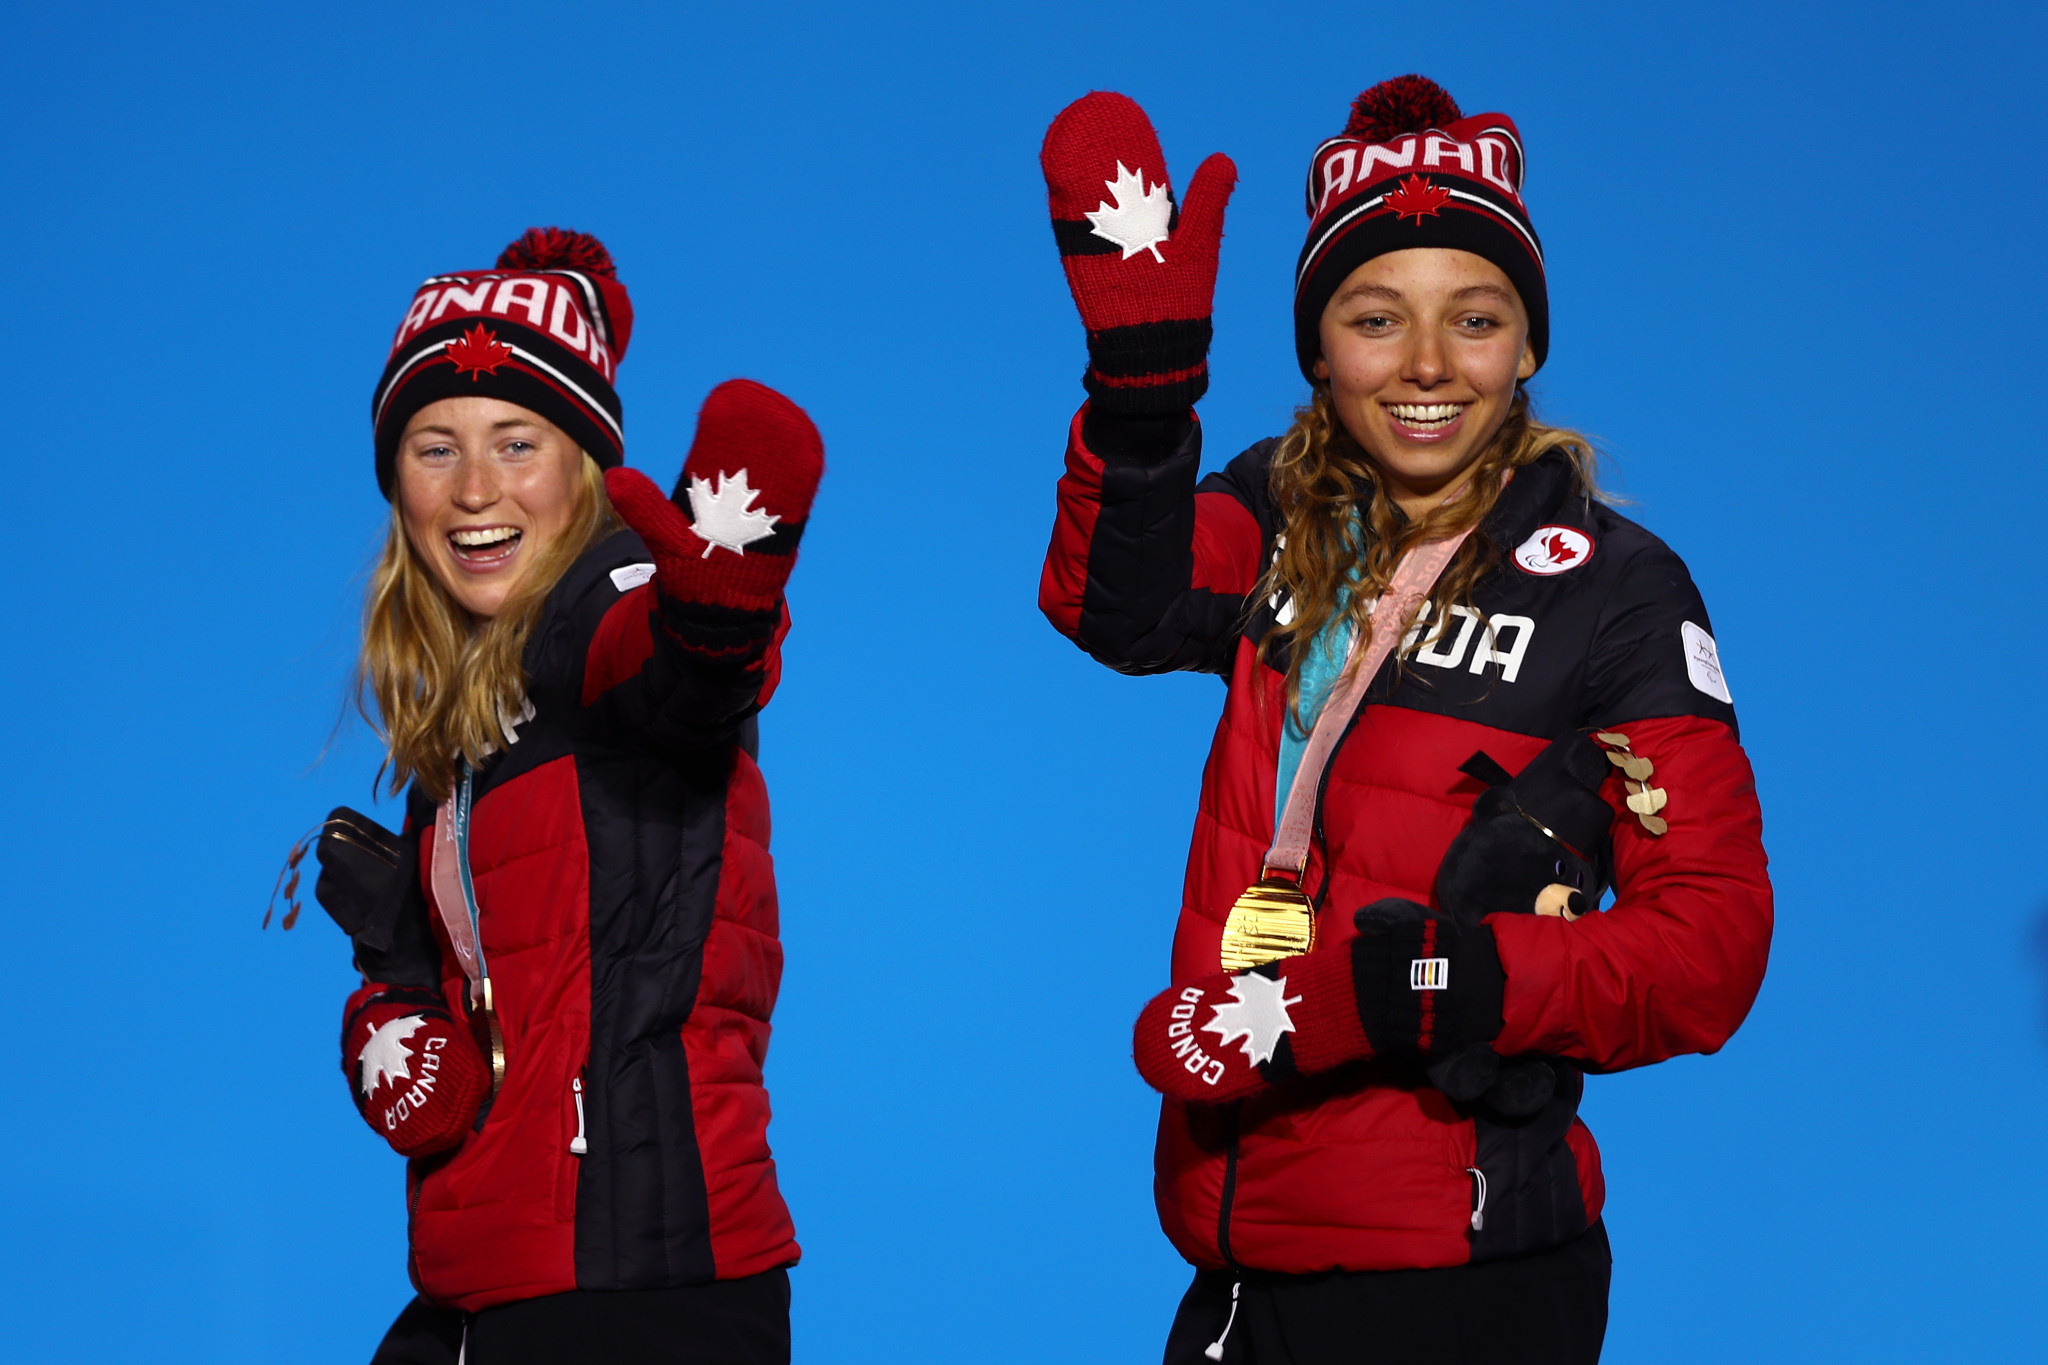 Team Canada under Karen O'Neill were successful at the 2018 Paralympic Winter Games in Pyeongchang ©Getty Images